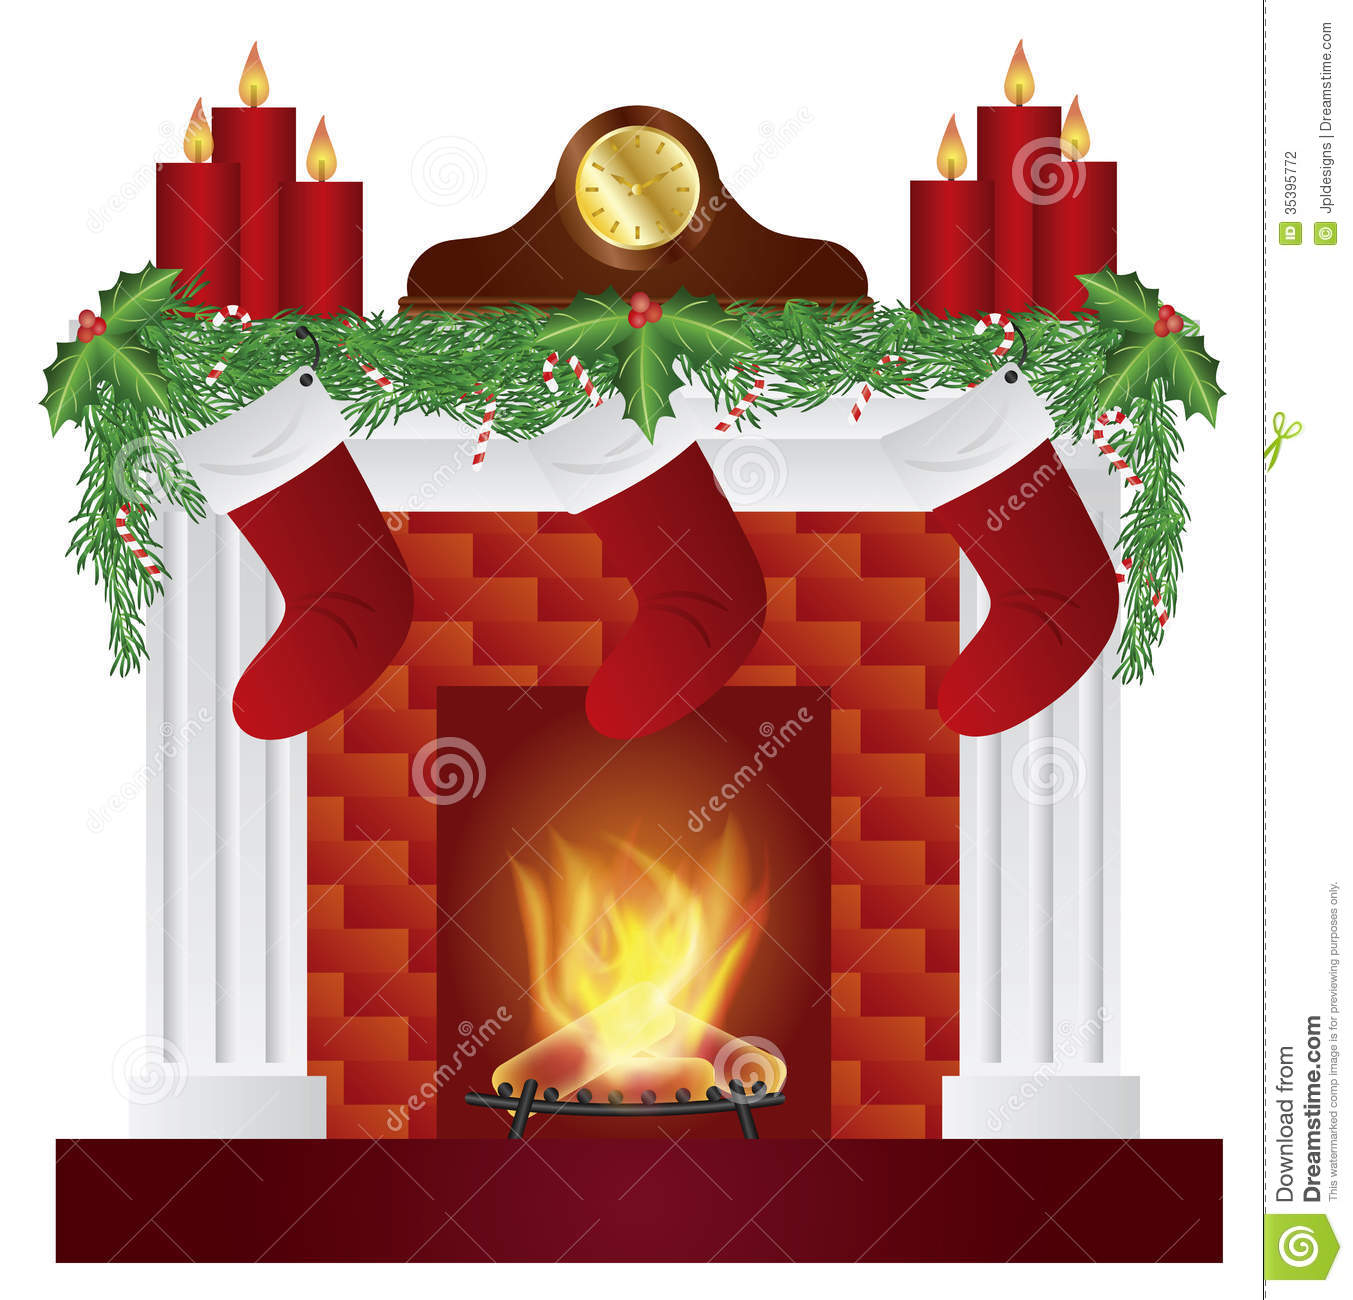 Christmas fireplace stockings clipart suggest